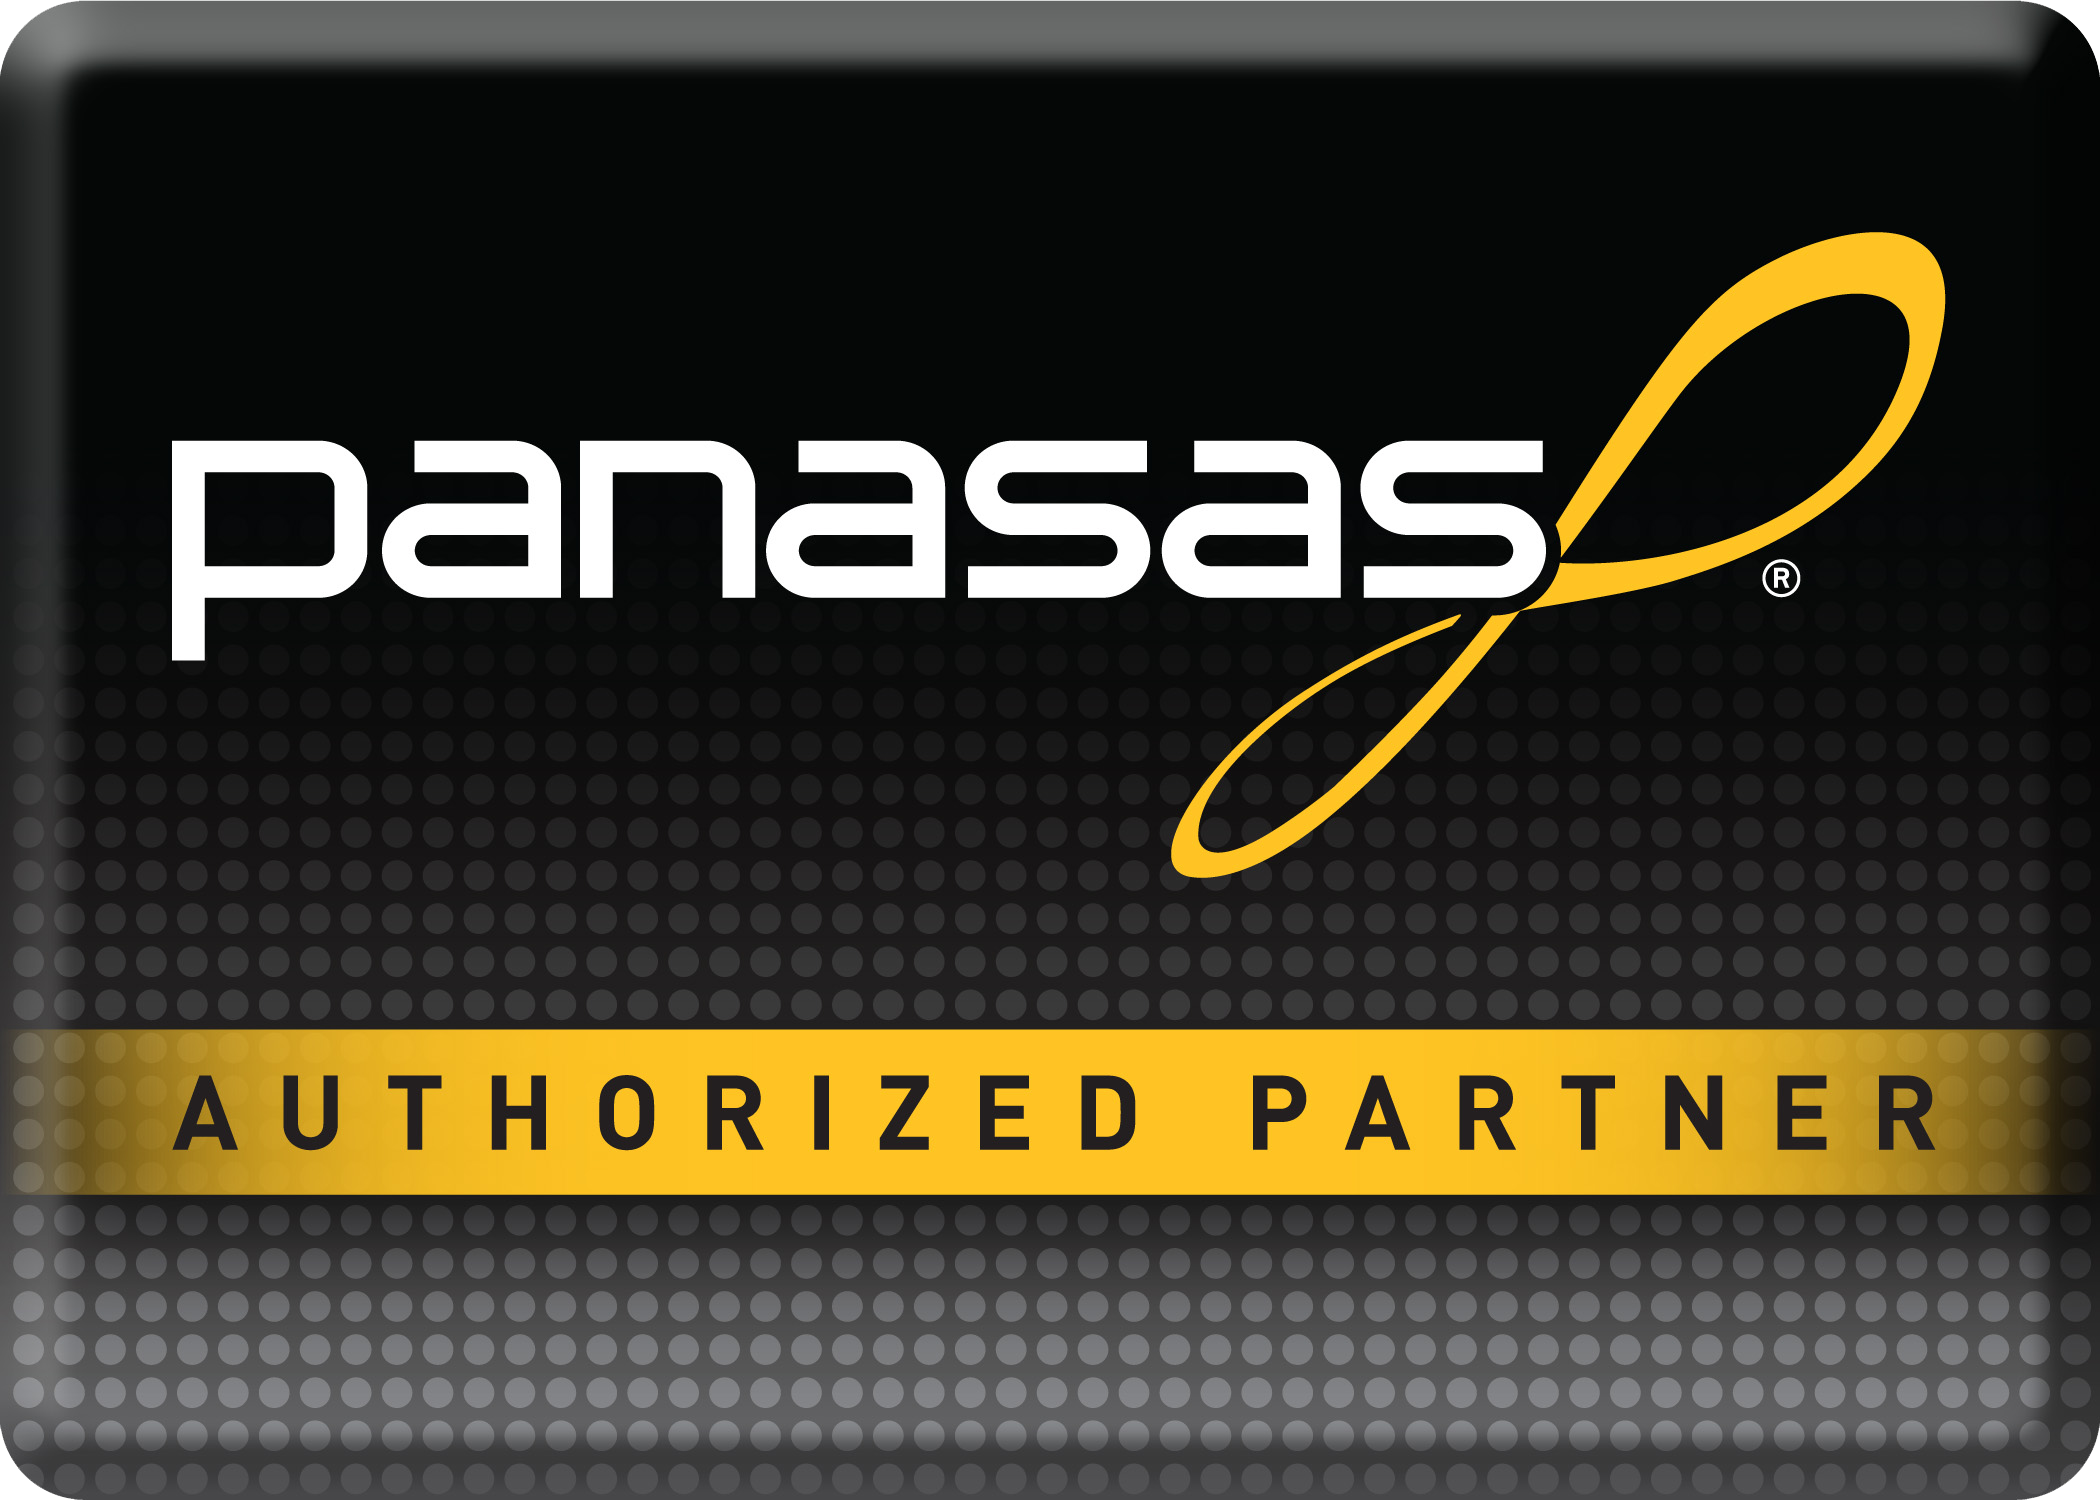 Panasas authorized partner